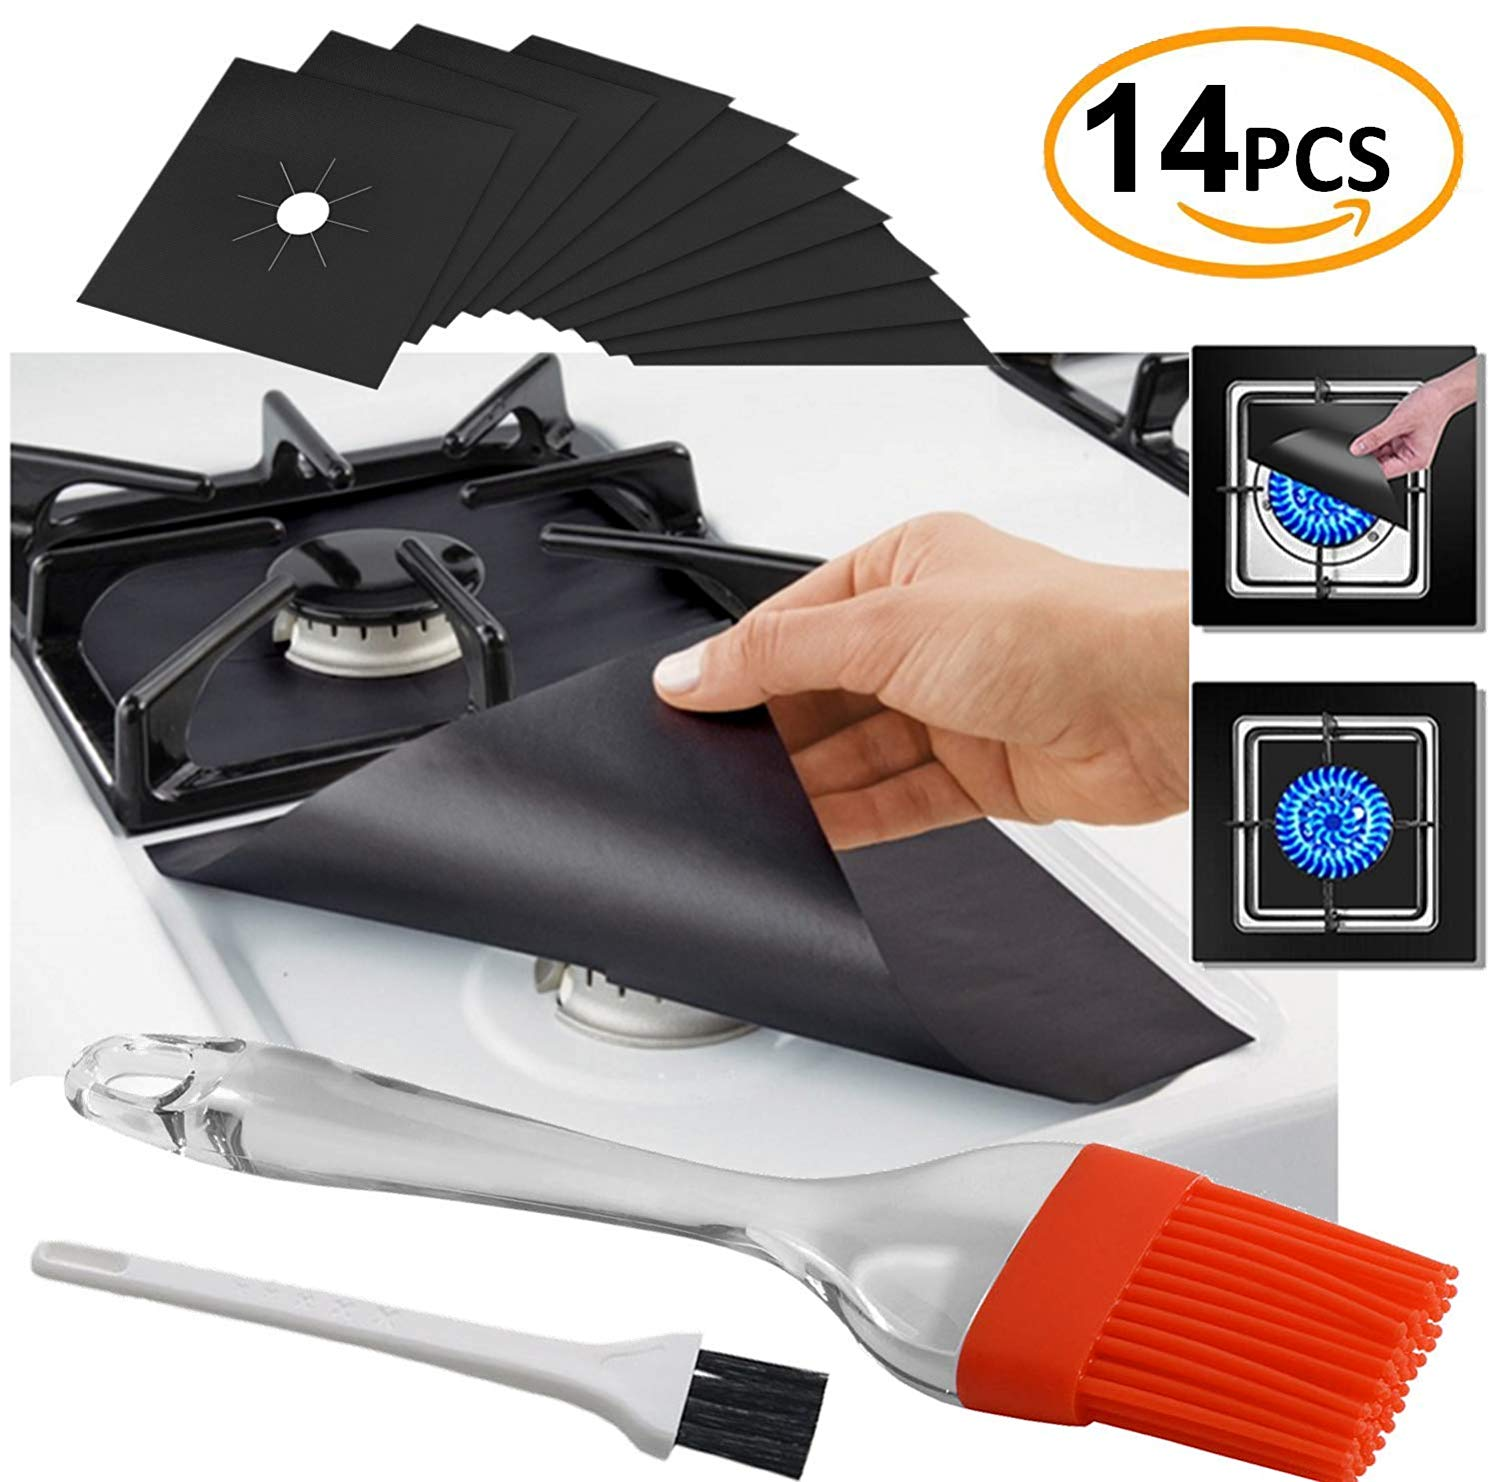 SPECIAL OFFER 12 Pcs Black Gas Stove Burner Covers + 2 BONUS Silicone Brush - Stove Top Liner - Gas Range Protector - Stove Burner Covers - IMPROVED Double Thickness 0.2mm Reusable & Dishwasher Safe